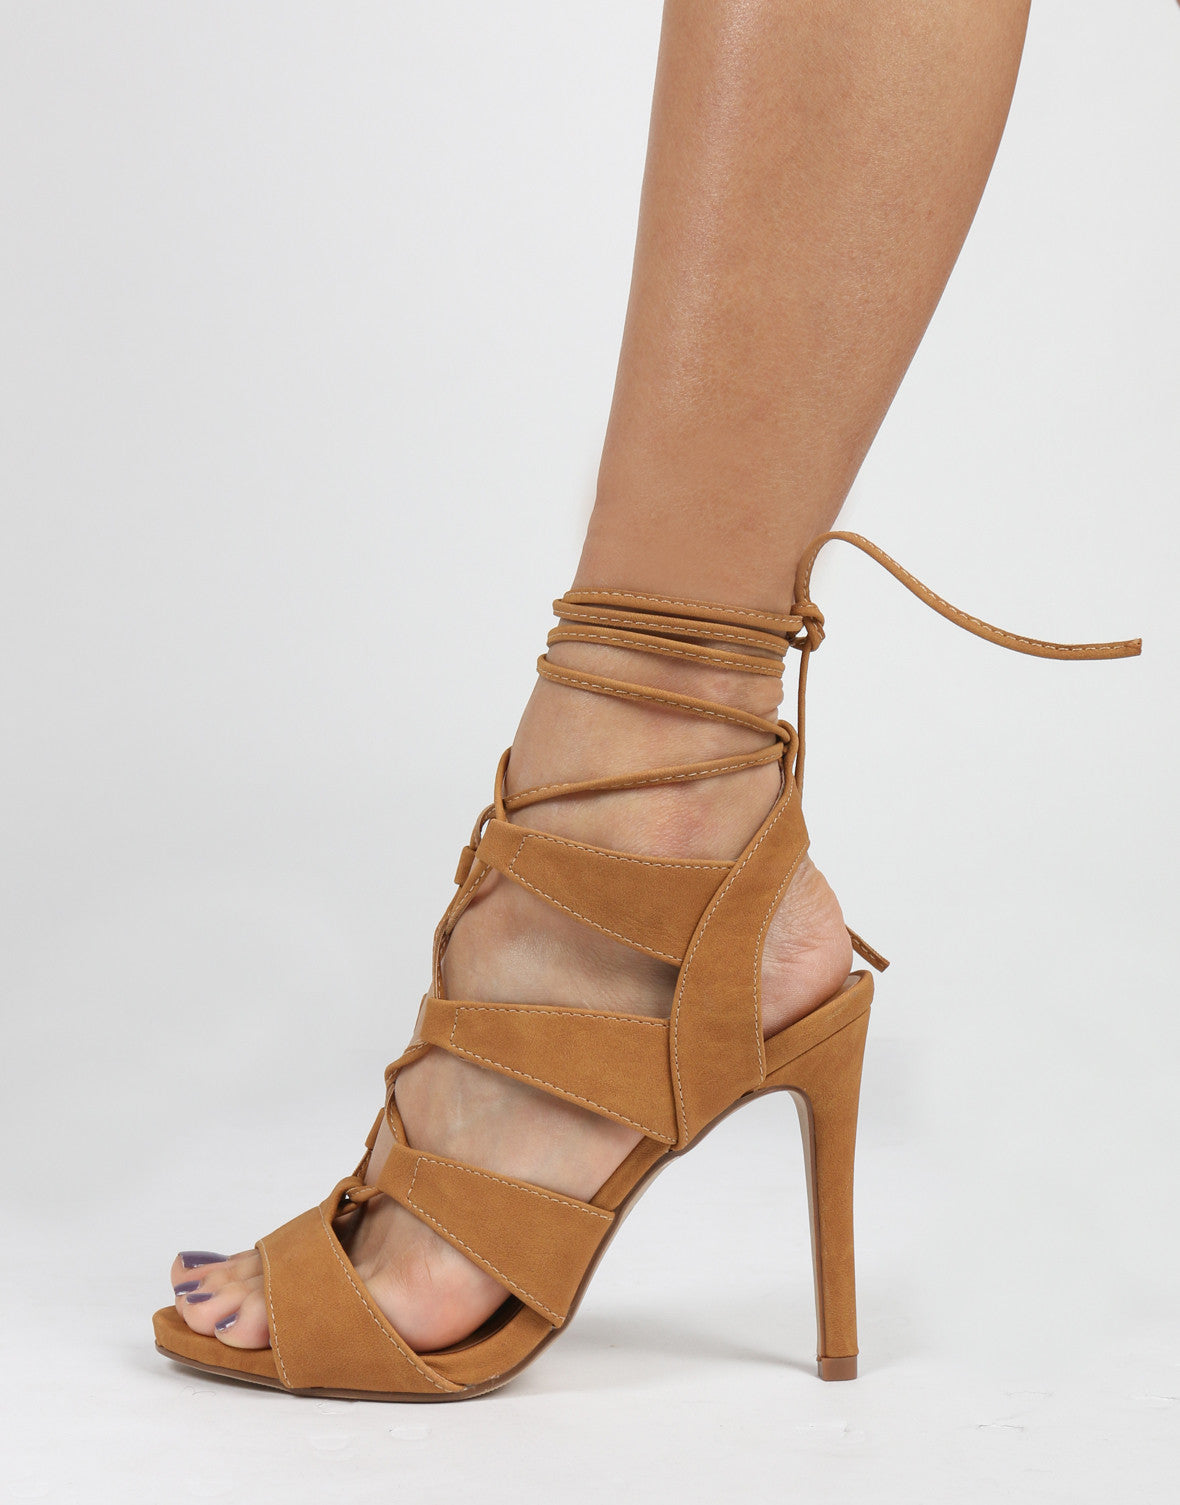 Strappy Lace Up Heels